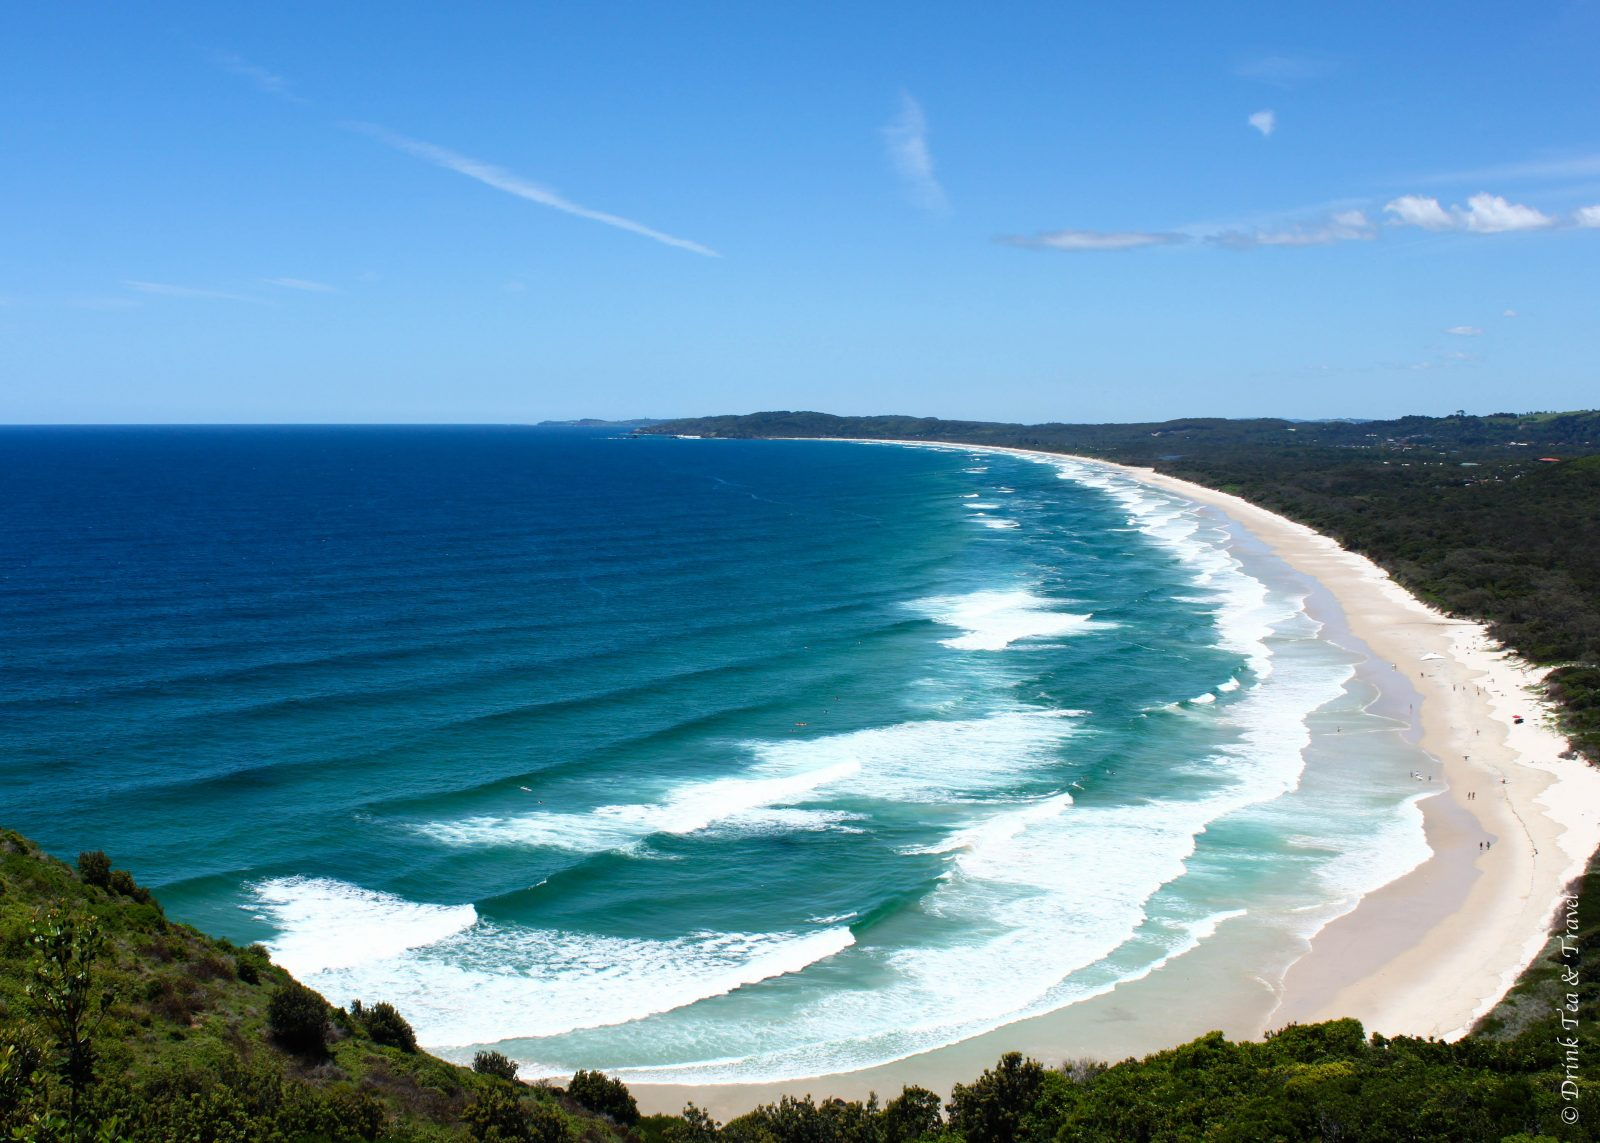 View from the top of Indian Head, Fraser Island